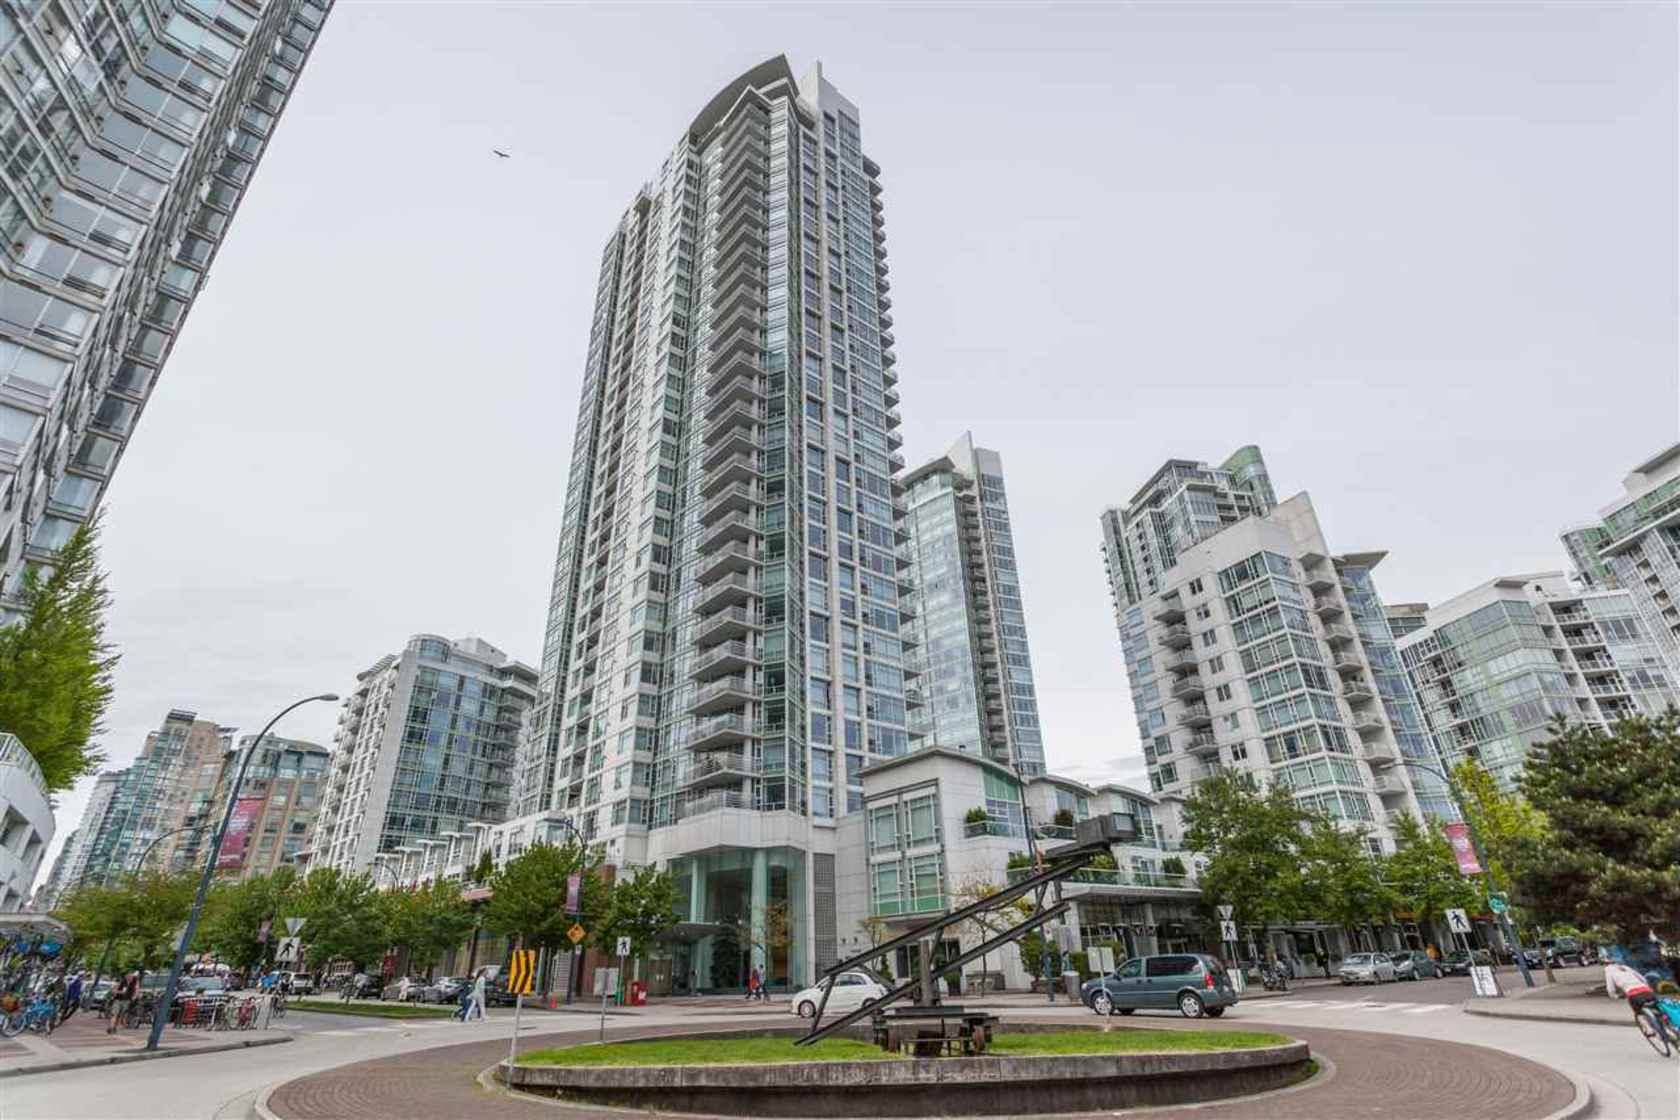 1199-marinaside-crescent-yaletown-vancouver-west-17 at 803 - 1199 Marinaside Crescent, False Creek-Yaletown (Yaletown), Vancouver West